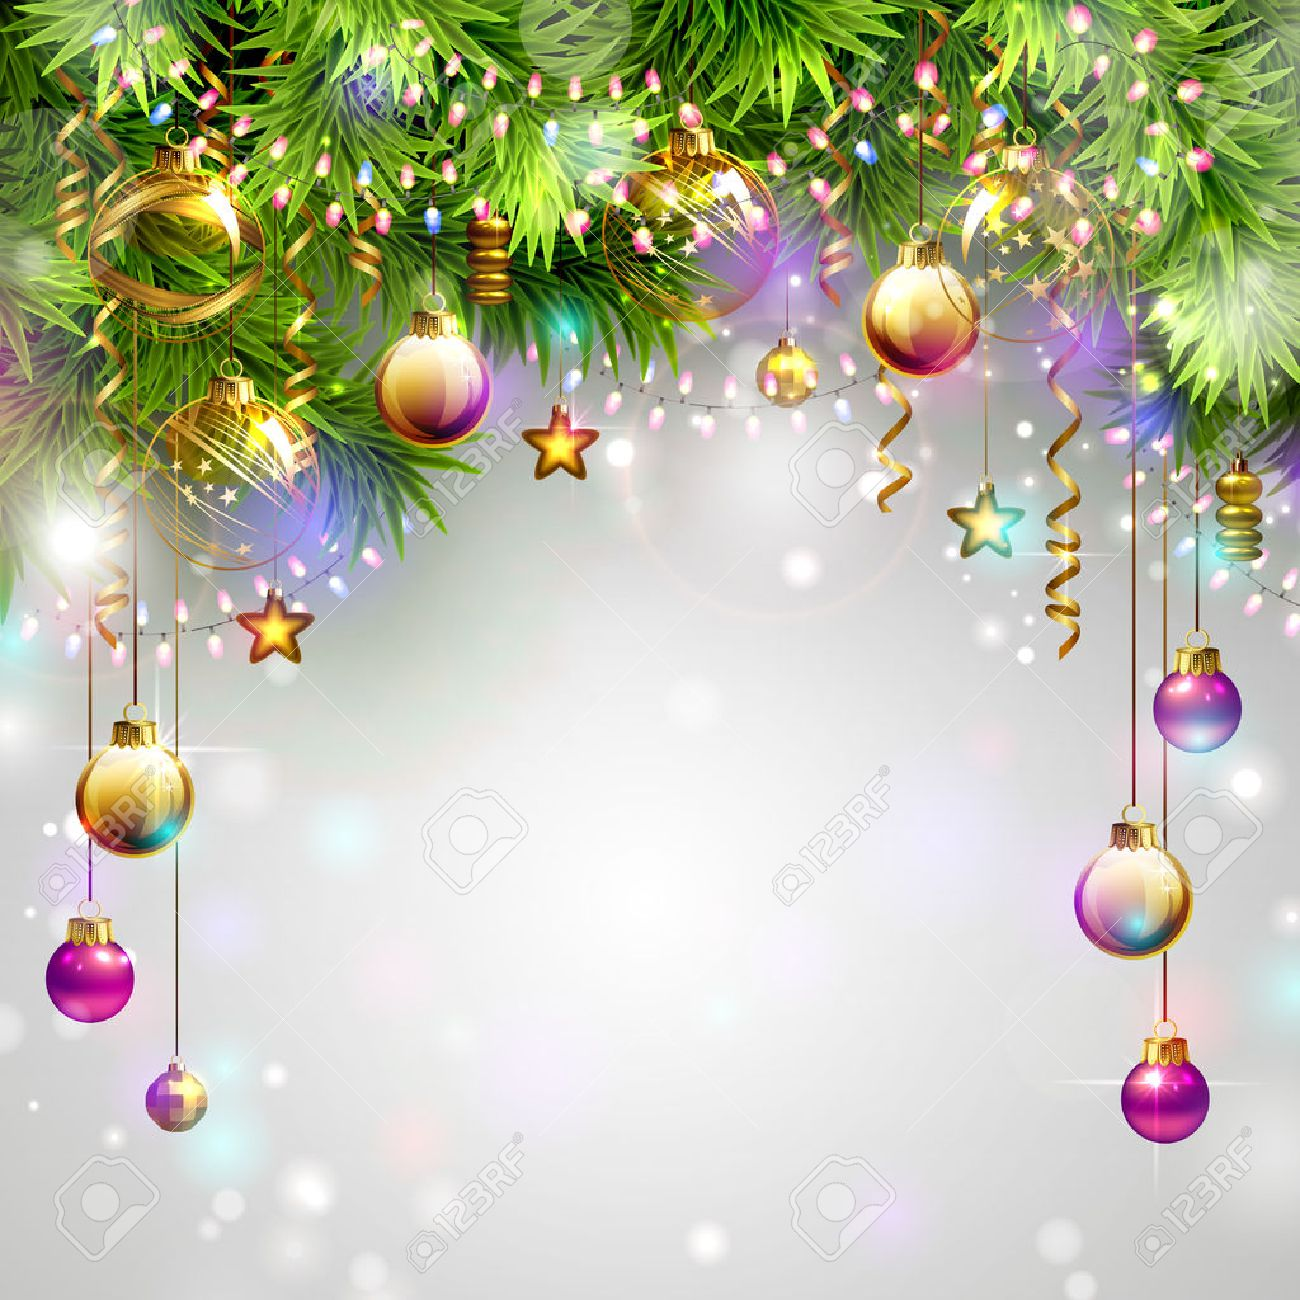 Christmas Backgrounds With Evening Balls Garlands And Fir trees 1300x1300